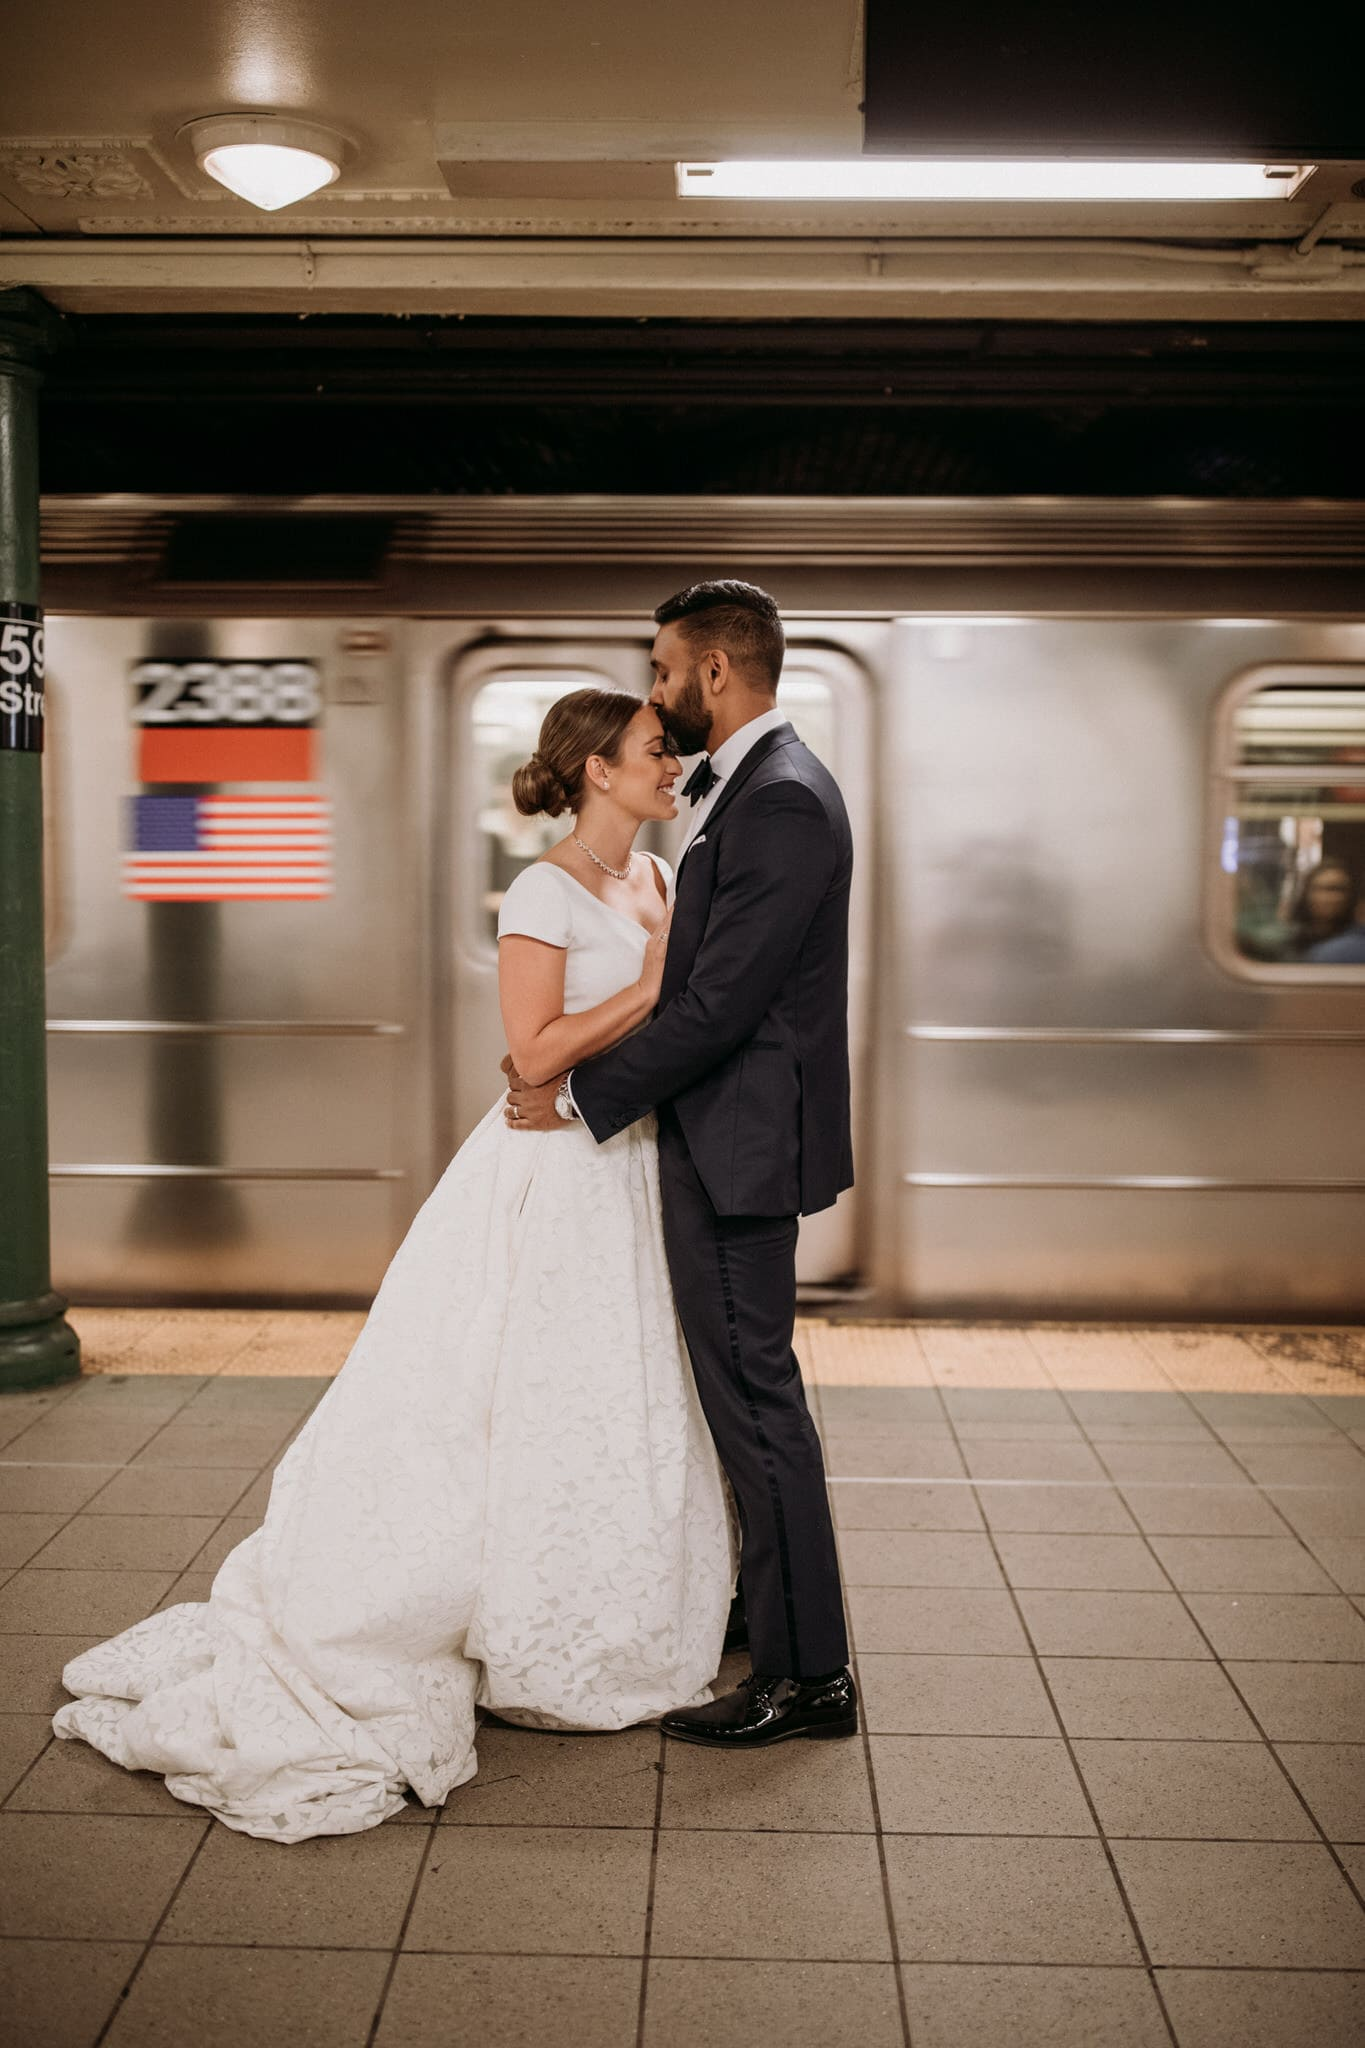 The bride and groom kiss on the subway platform in New York City. Wedding Photographer Brent Calis.